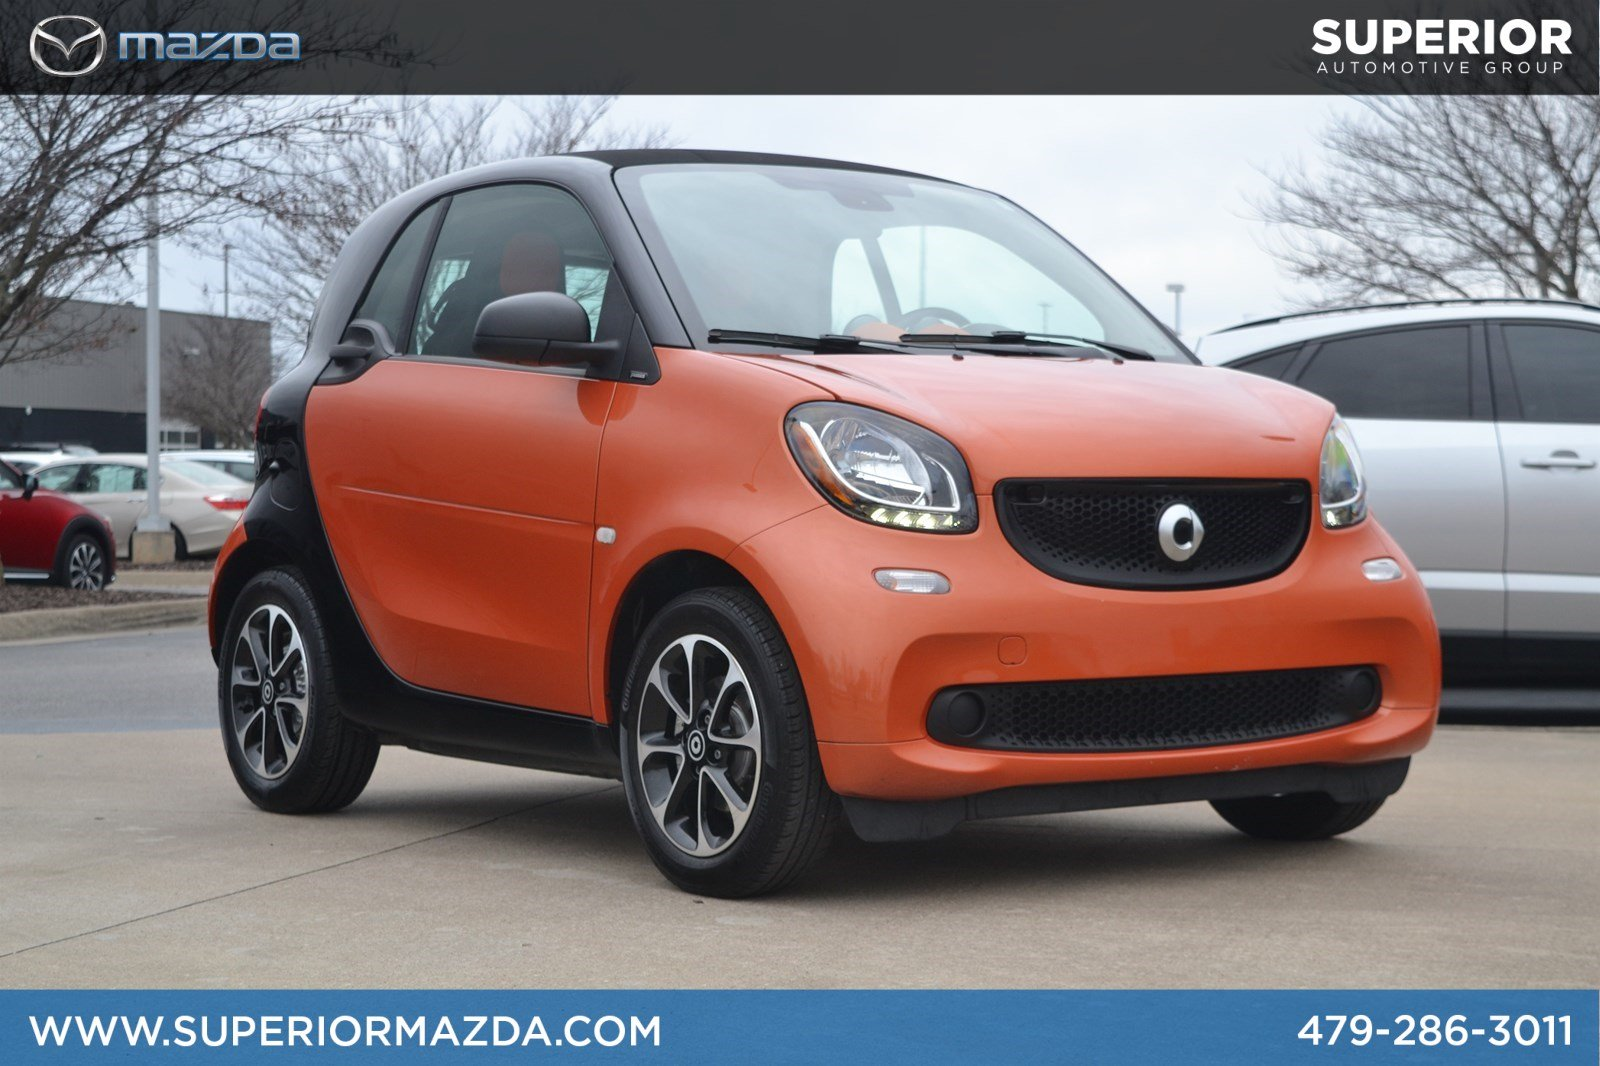 Pre-Owned 2017 smart fortwo passion